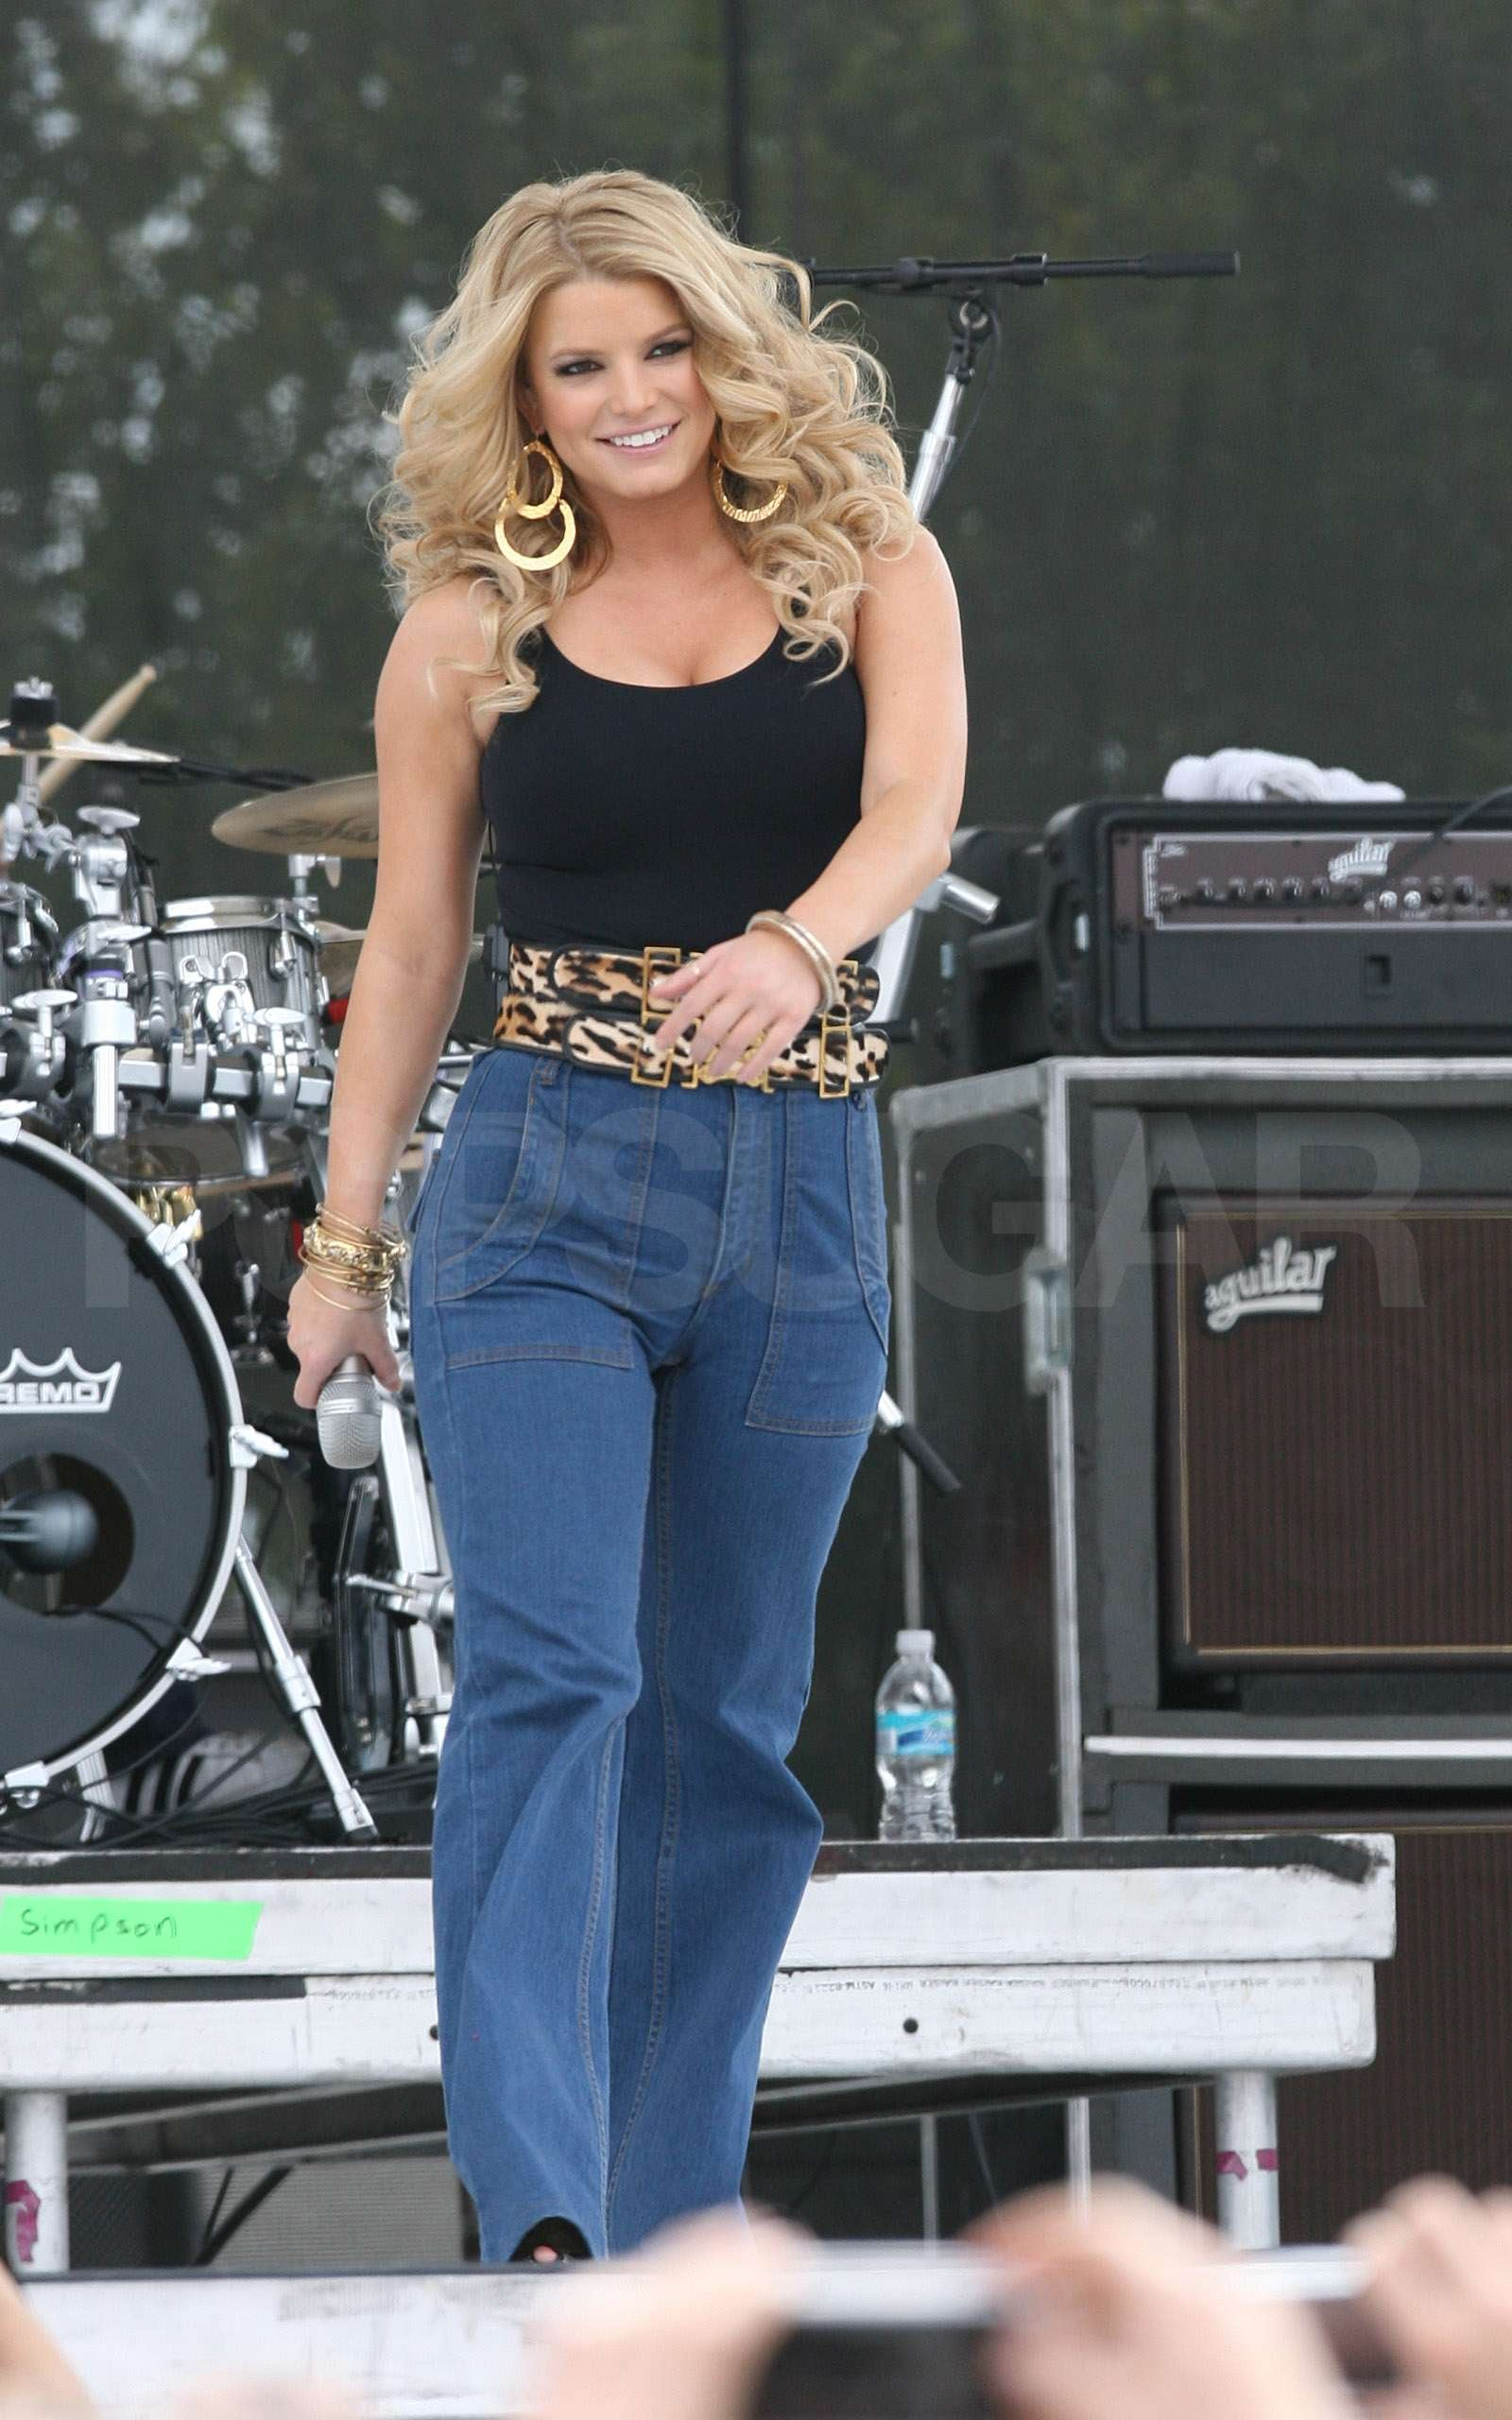 West End Auto >> Jessica Simpson Hikes Up Her Jeans and Sings For Chili ...